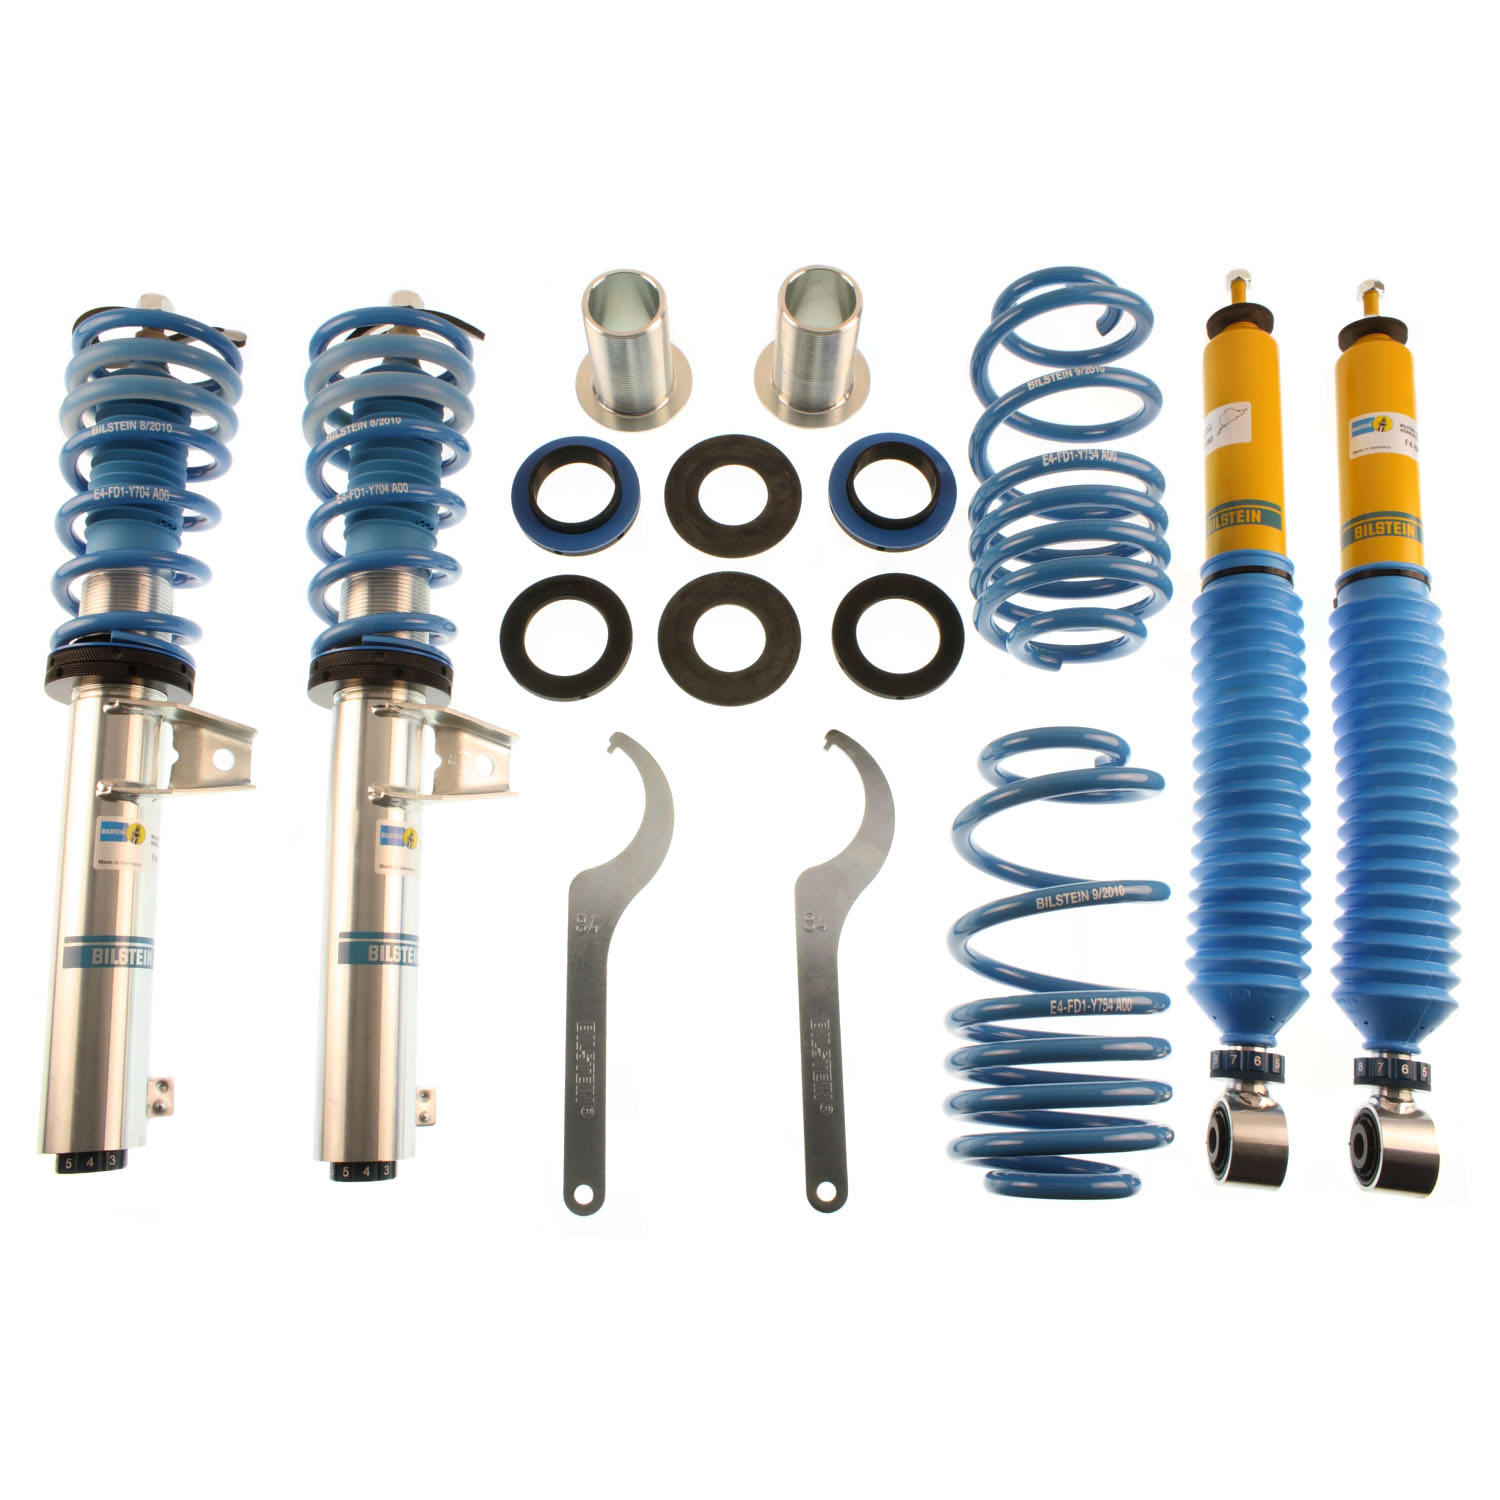 Bilstein PSS10 Performance Suspension VW Golf/GTI/Jetta/Passat